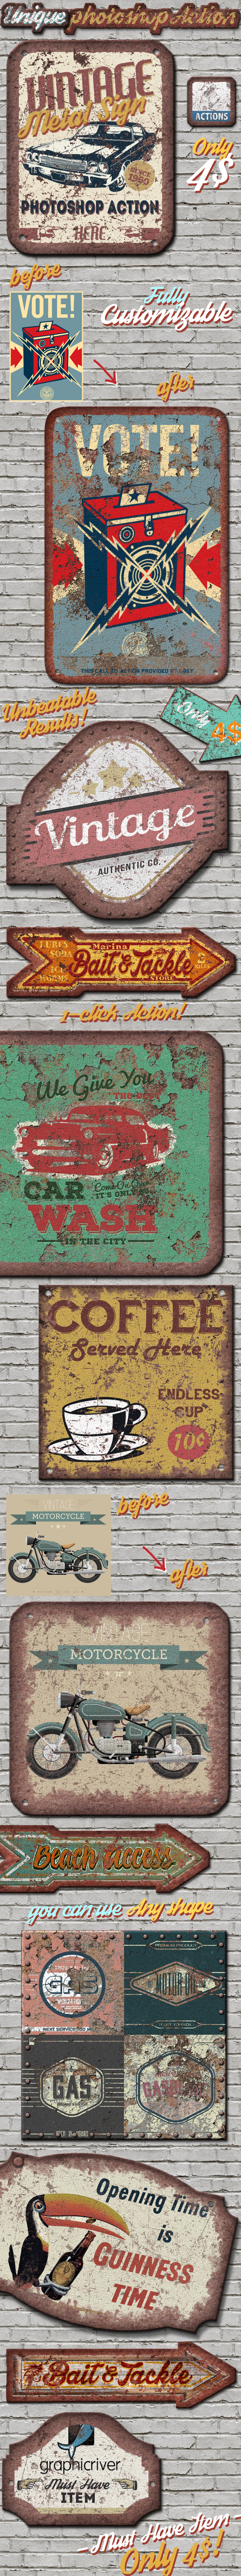 Vintage Metal Sign Photoshop Action - Utilities Actions